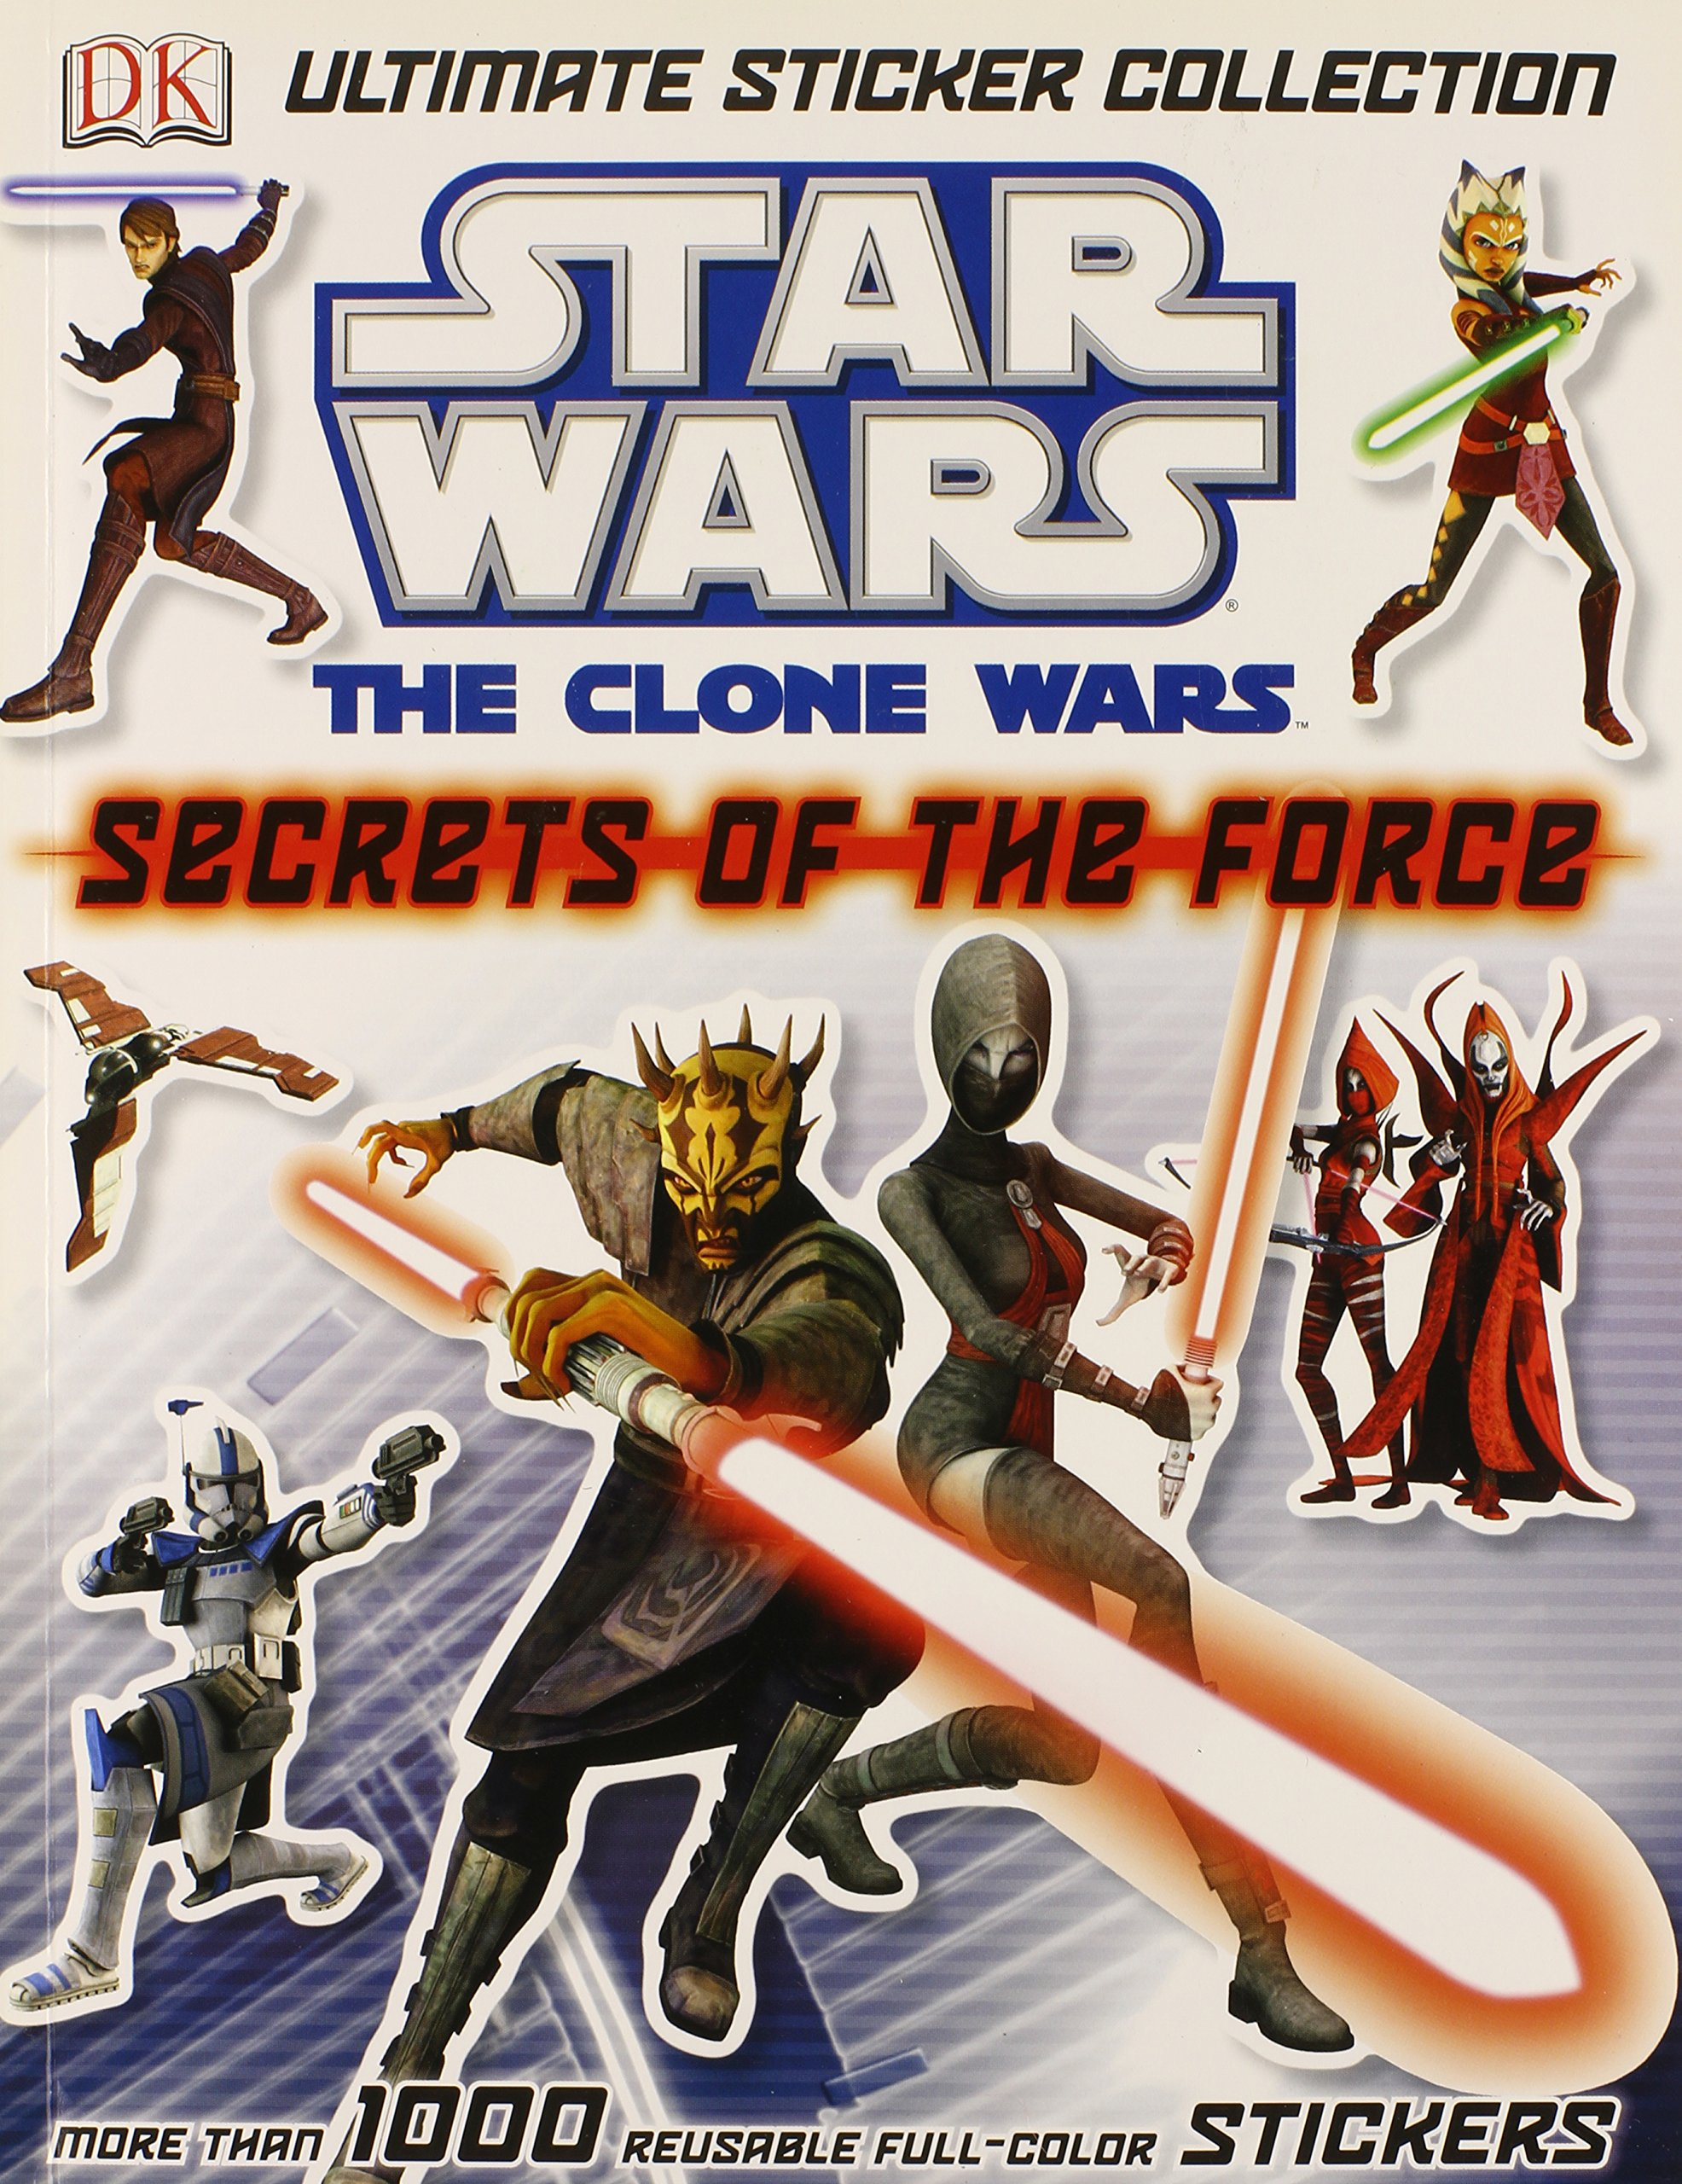 Star Wars The Clone Wars: Secrets of the Force Ultimate Sticker Collection